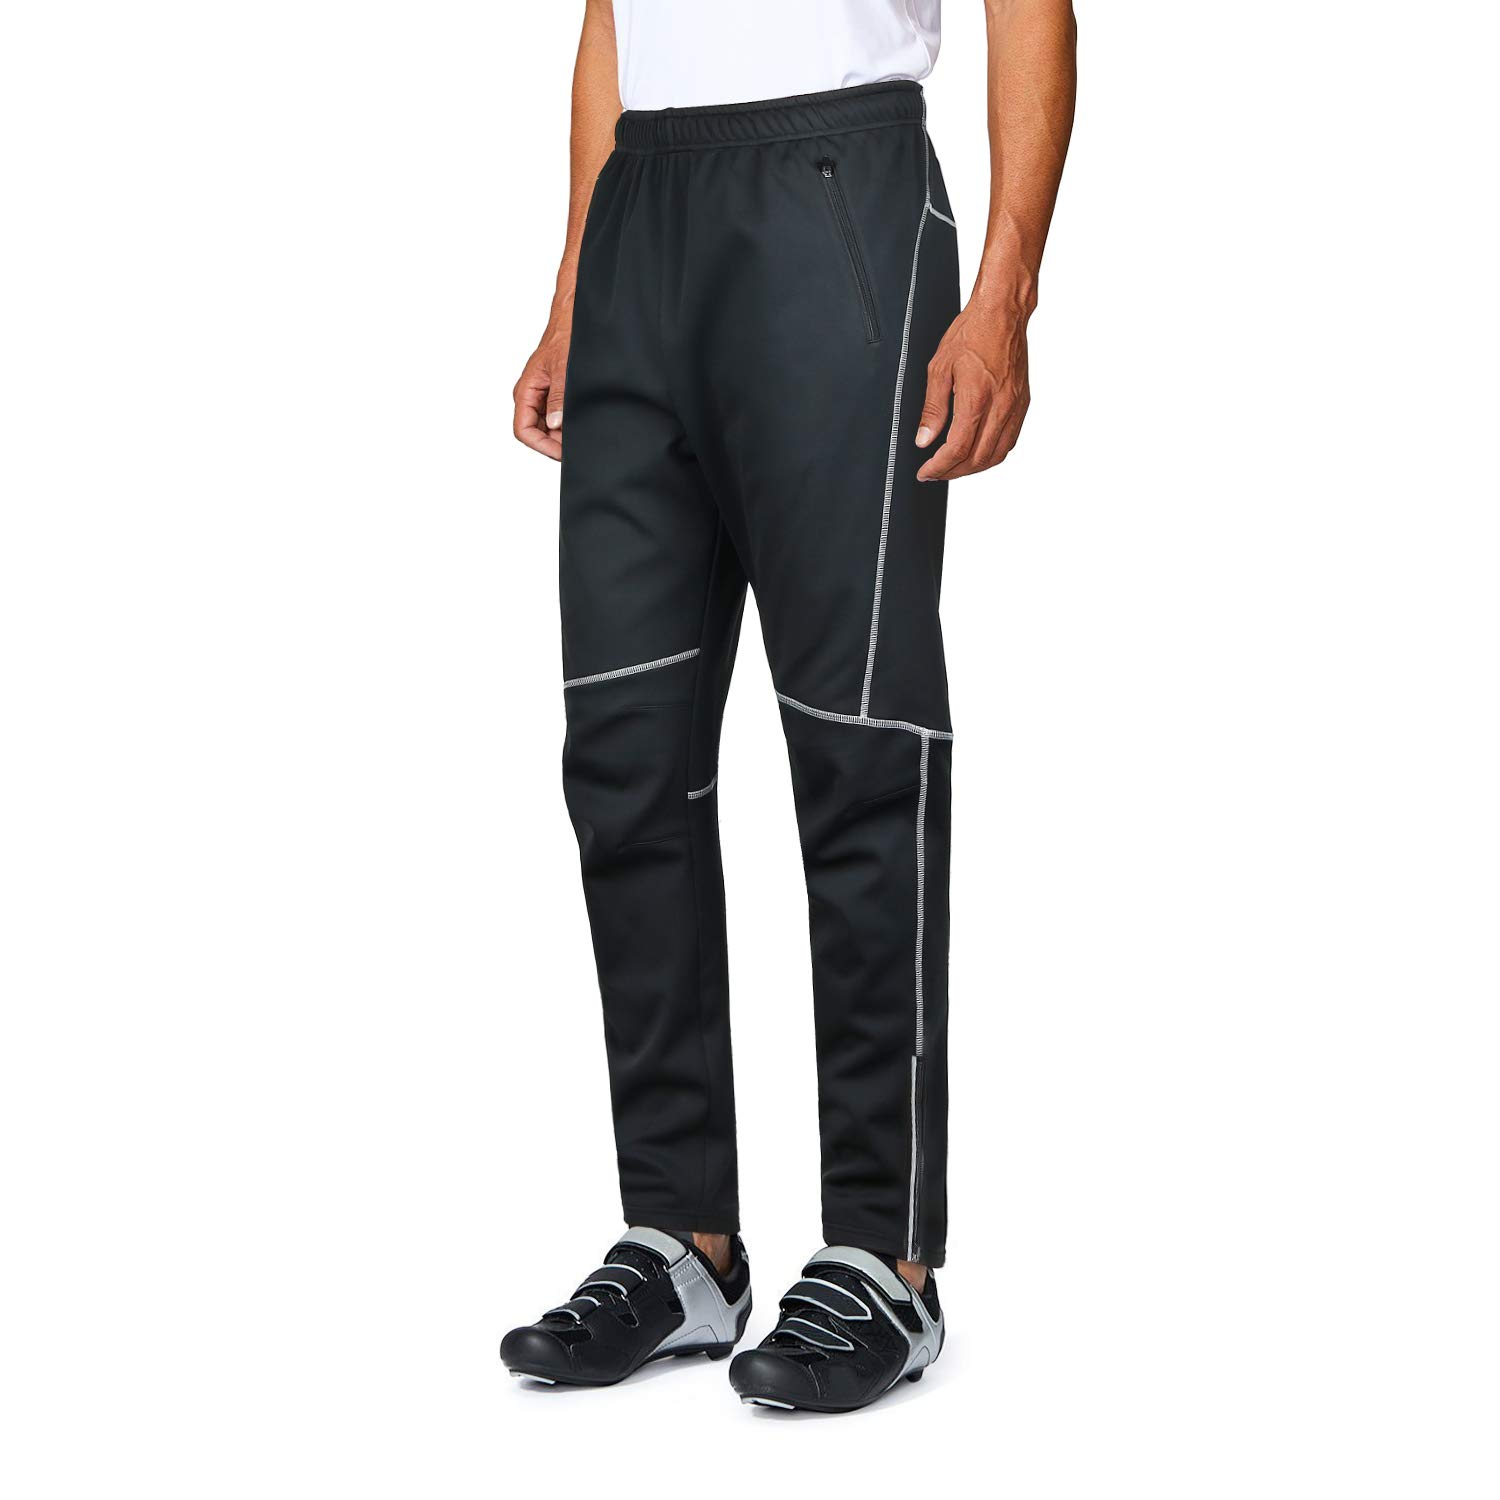 4ucycling Windproof Athletic Pants for Outdoor and Multi Sports by 4ucycling